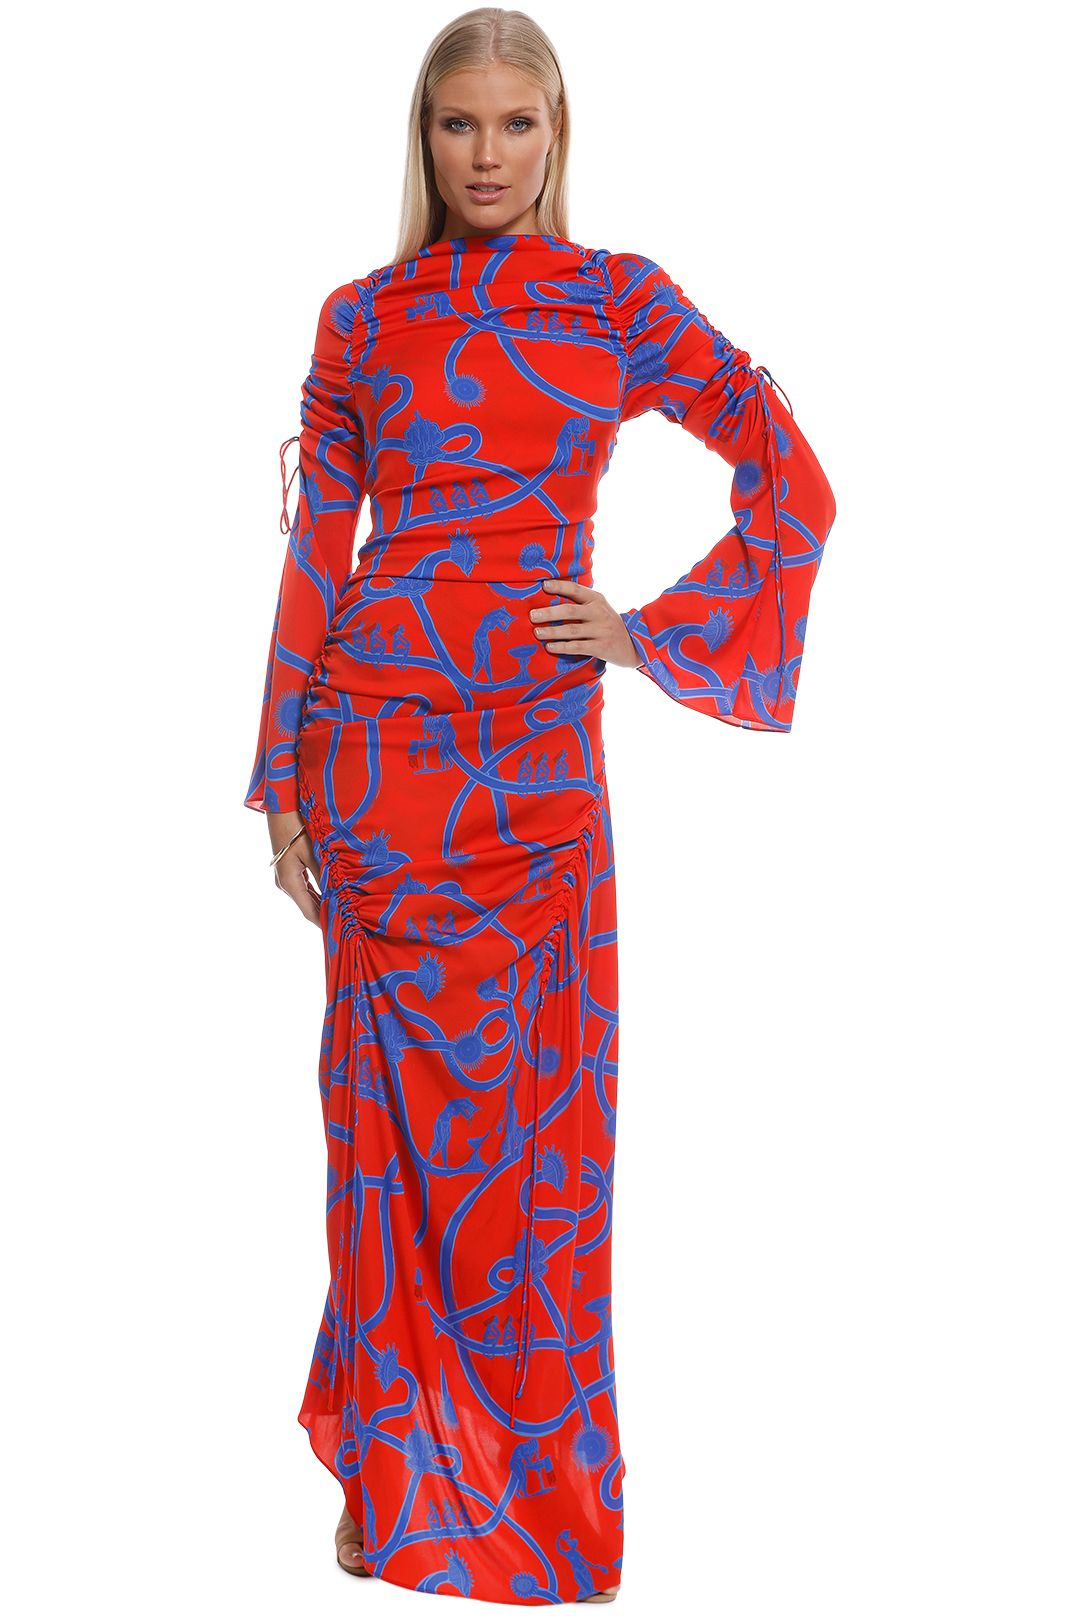 Ellery - Rocket Women Rouched Dress - Red - Front